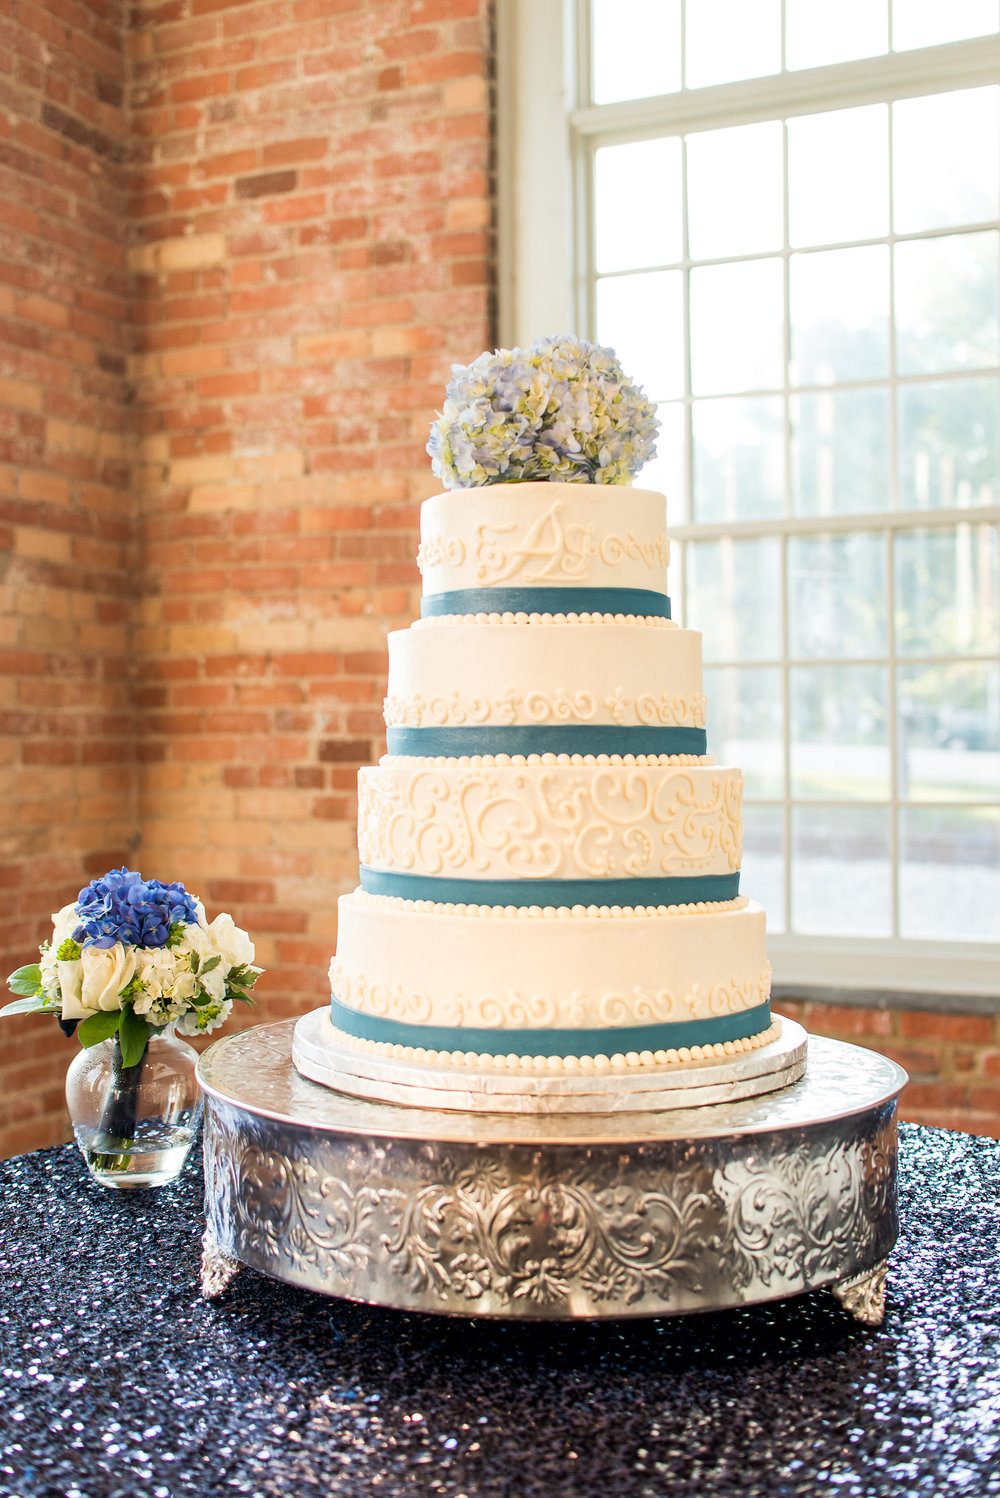 Cake with Ribbon | Edible Art Bakery of Raleigh